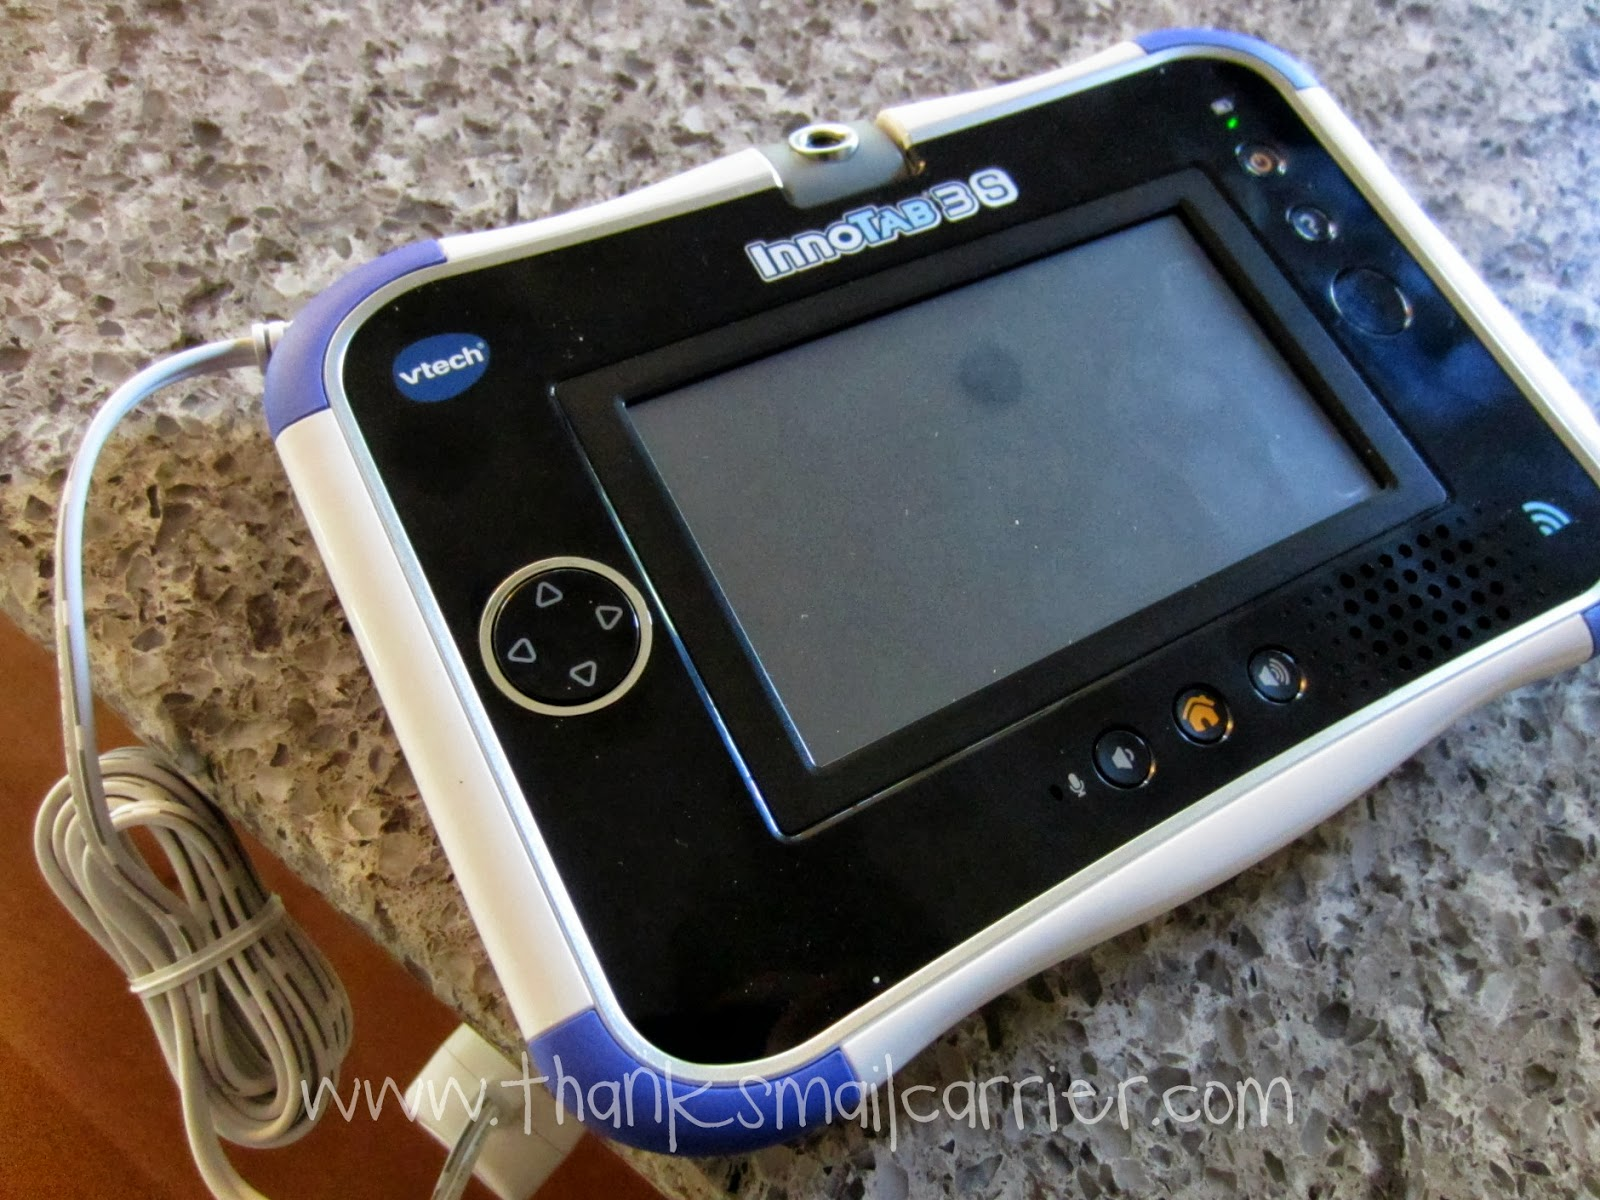 VTech InnoTab 3S charger